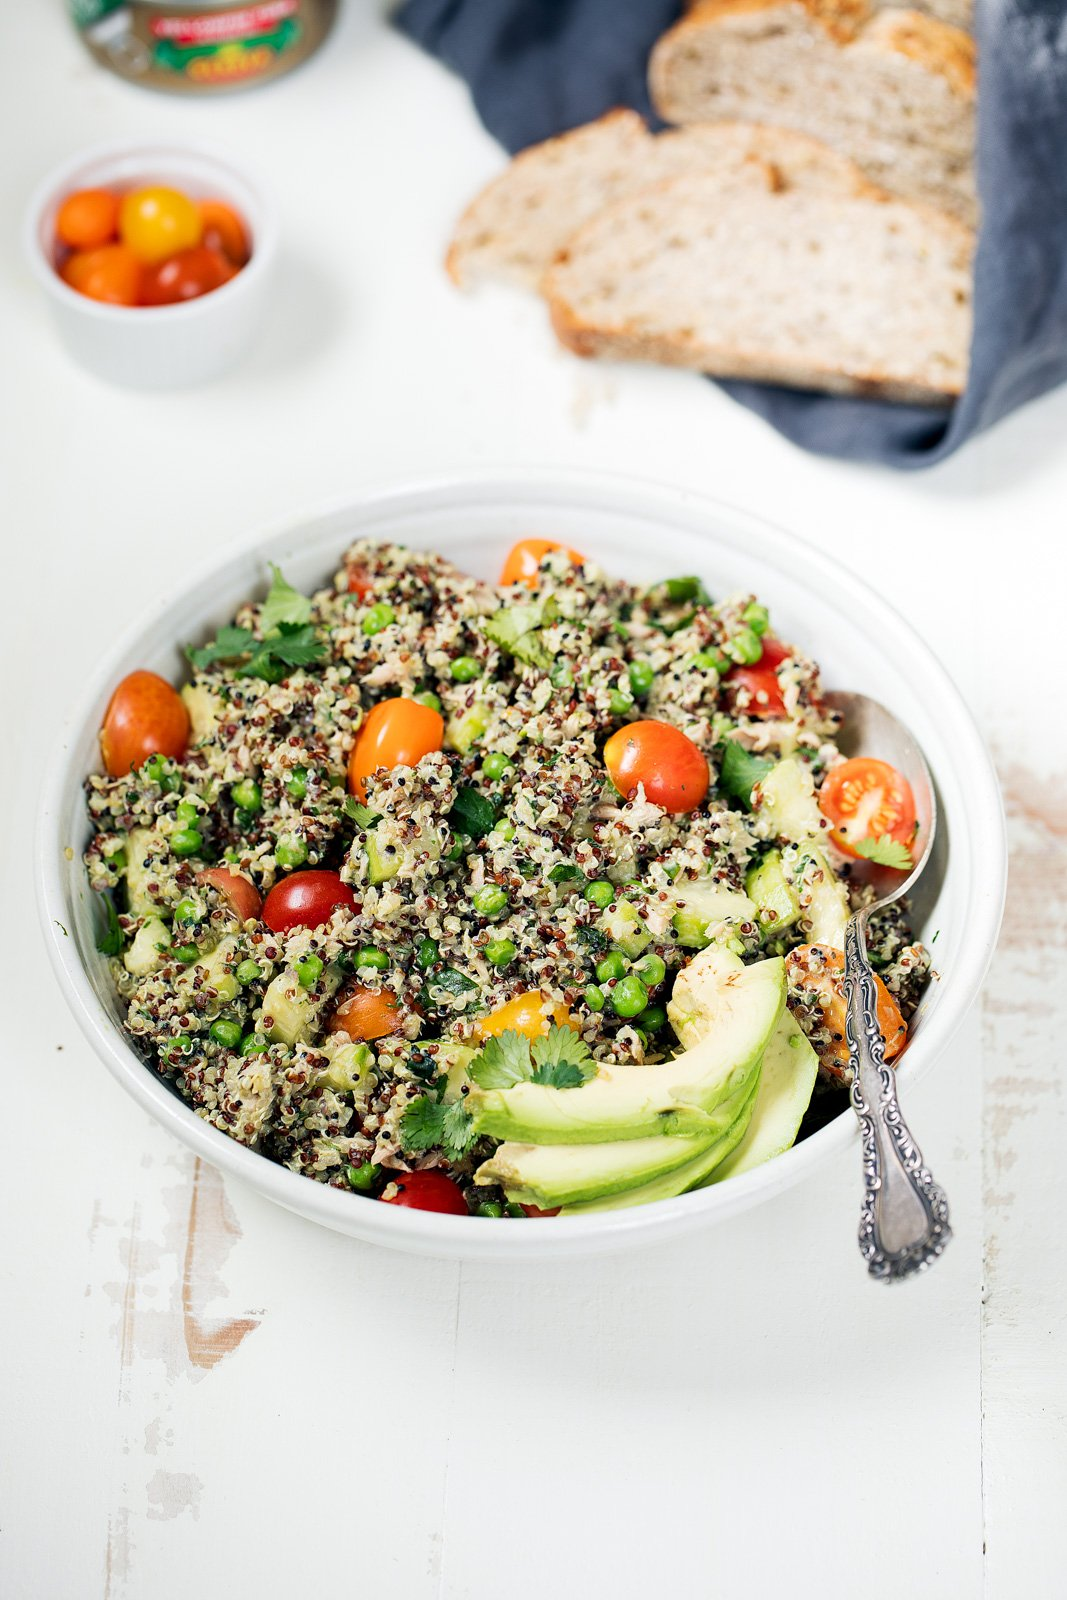 These 29 incredible quinoa recipes are the perfect way to experiment with cooking quinoa. From salads and chilis to pancakes and granola bars - you're going to love these fun ways to cook with quinoa!